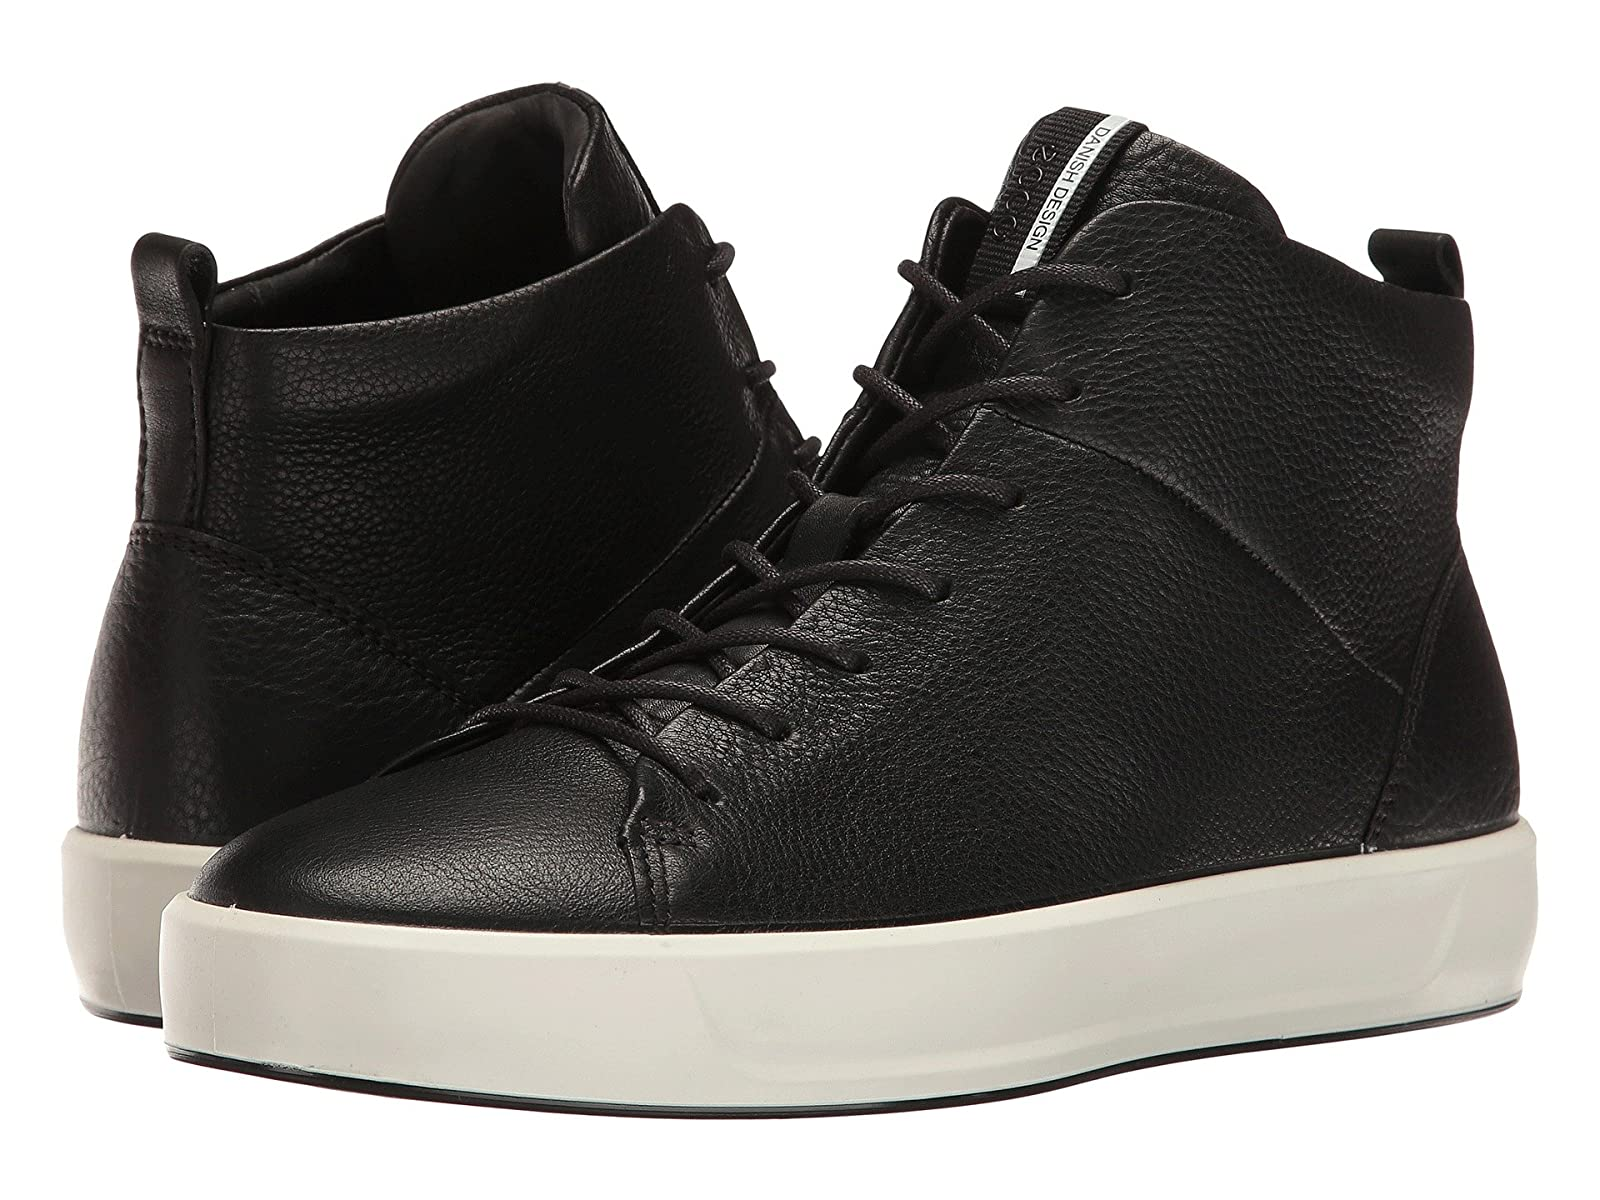 ECCO Soft 8 High TopAtmospheric grades have affordable shoes